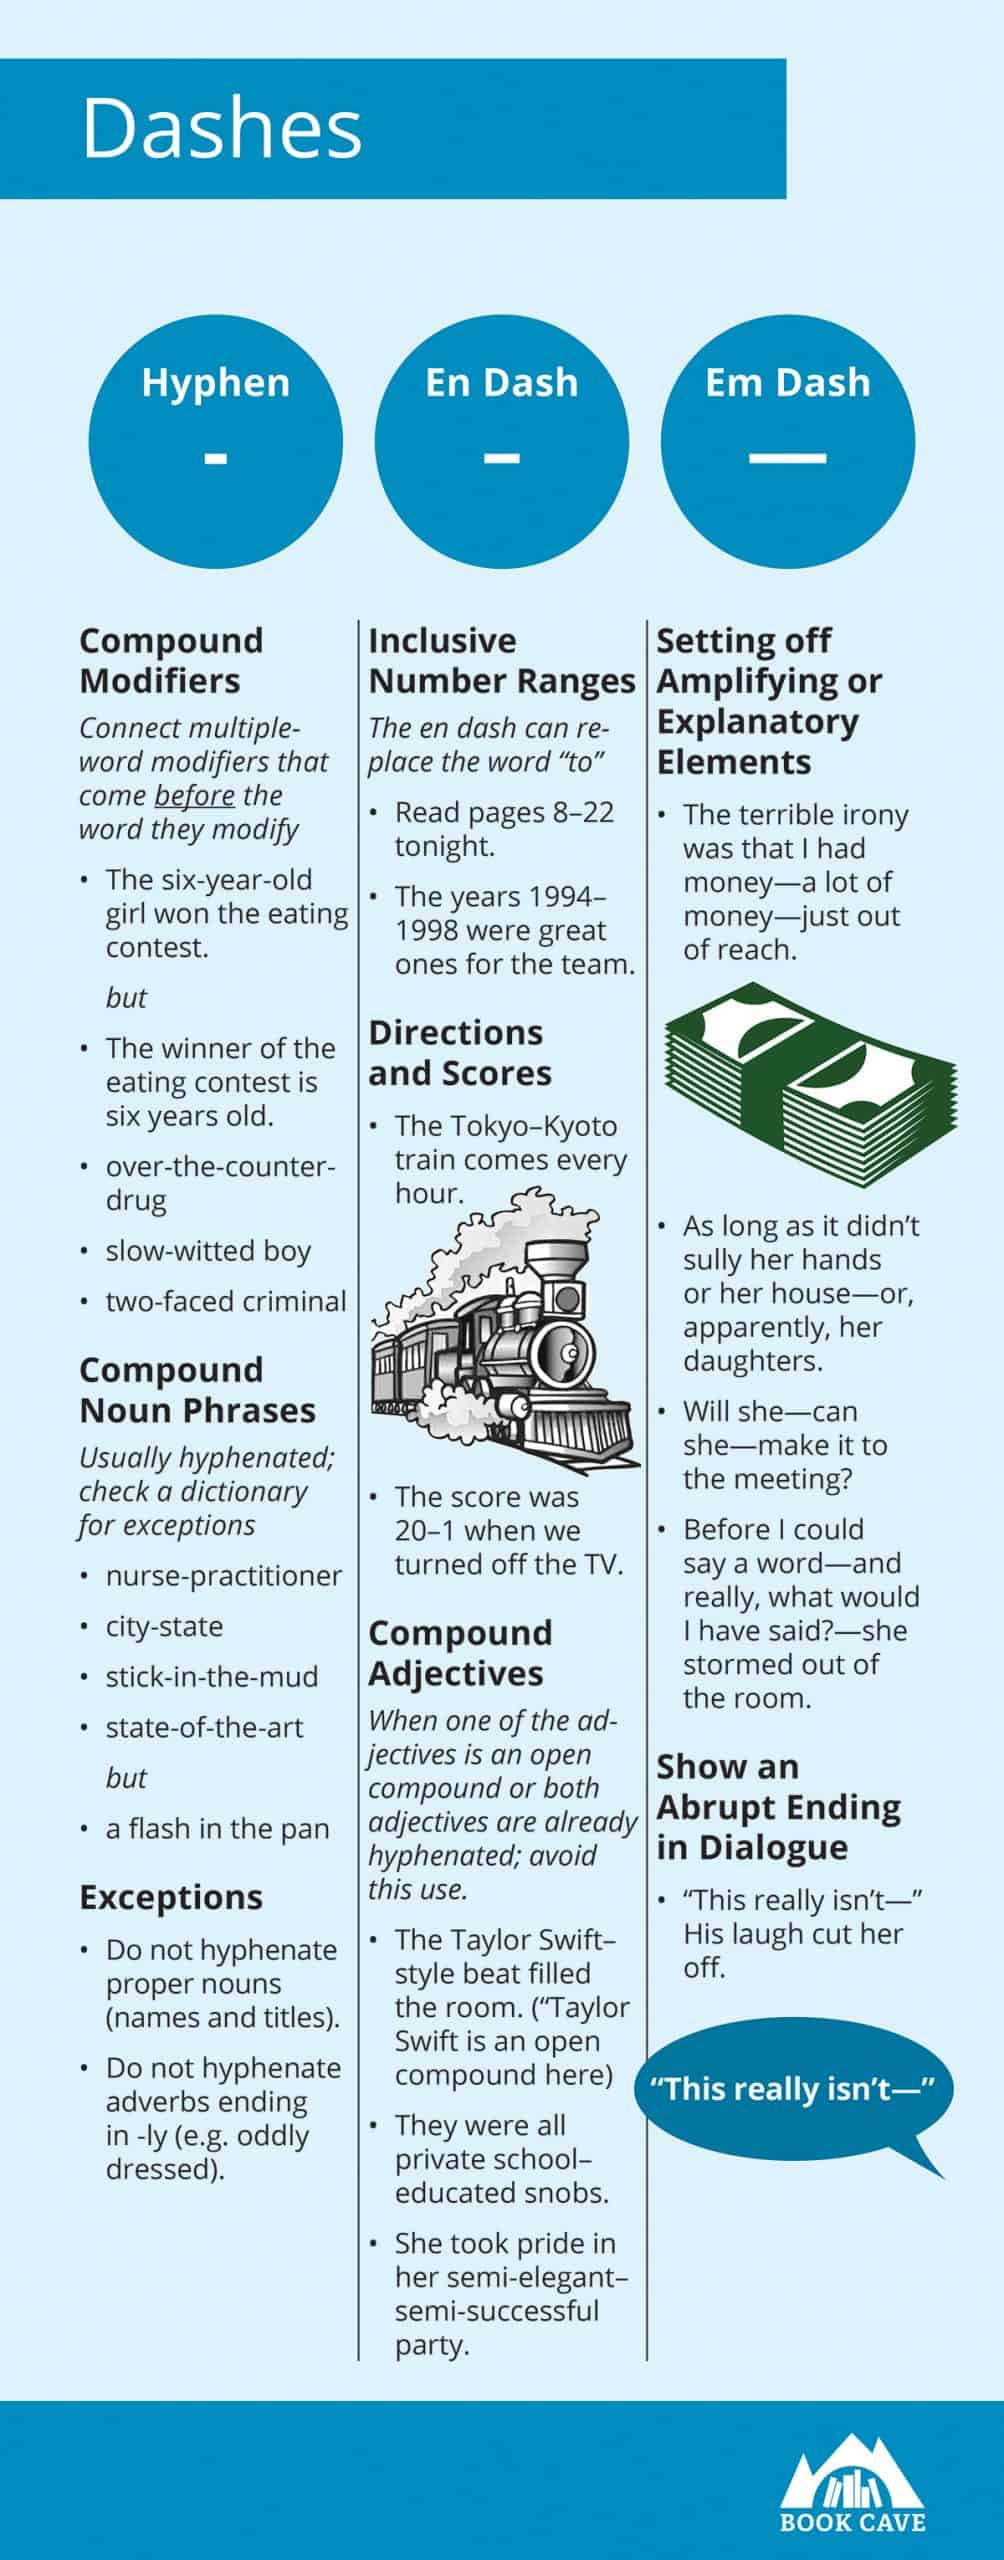 infographic on dashes